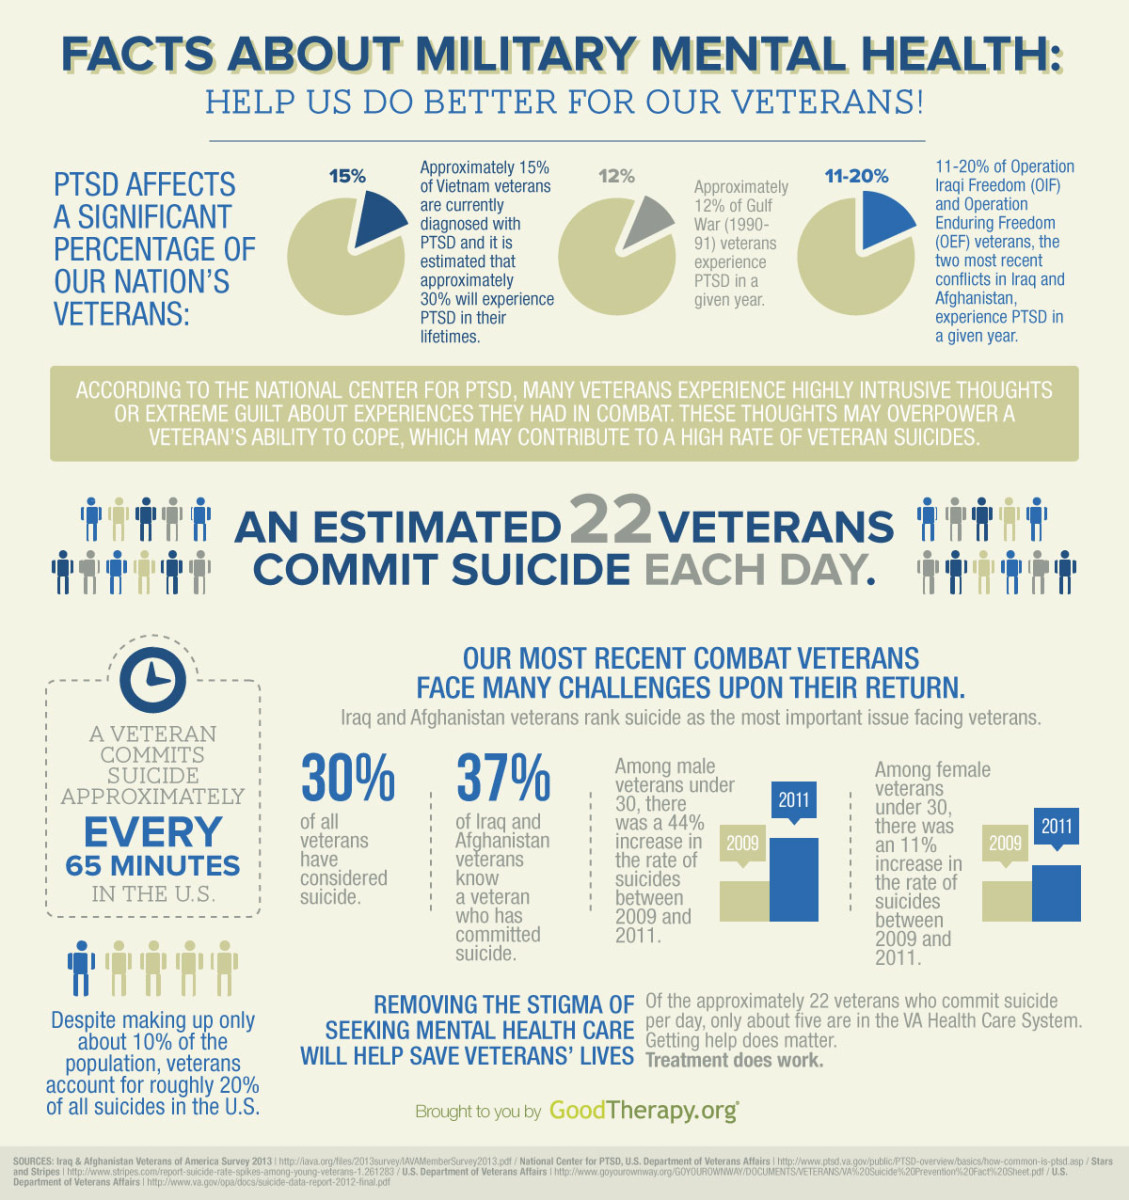 female-veterans-and-post-traumatic-stress